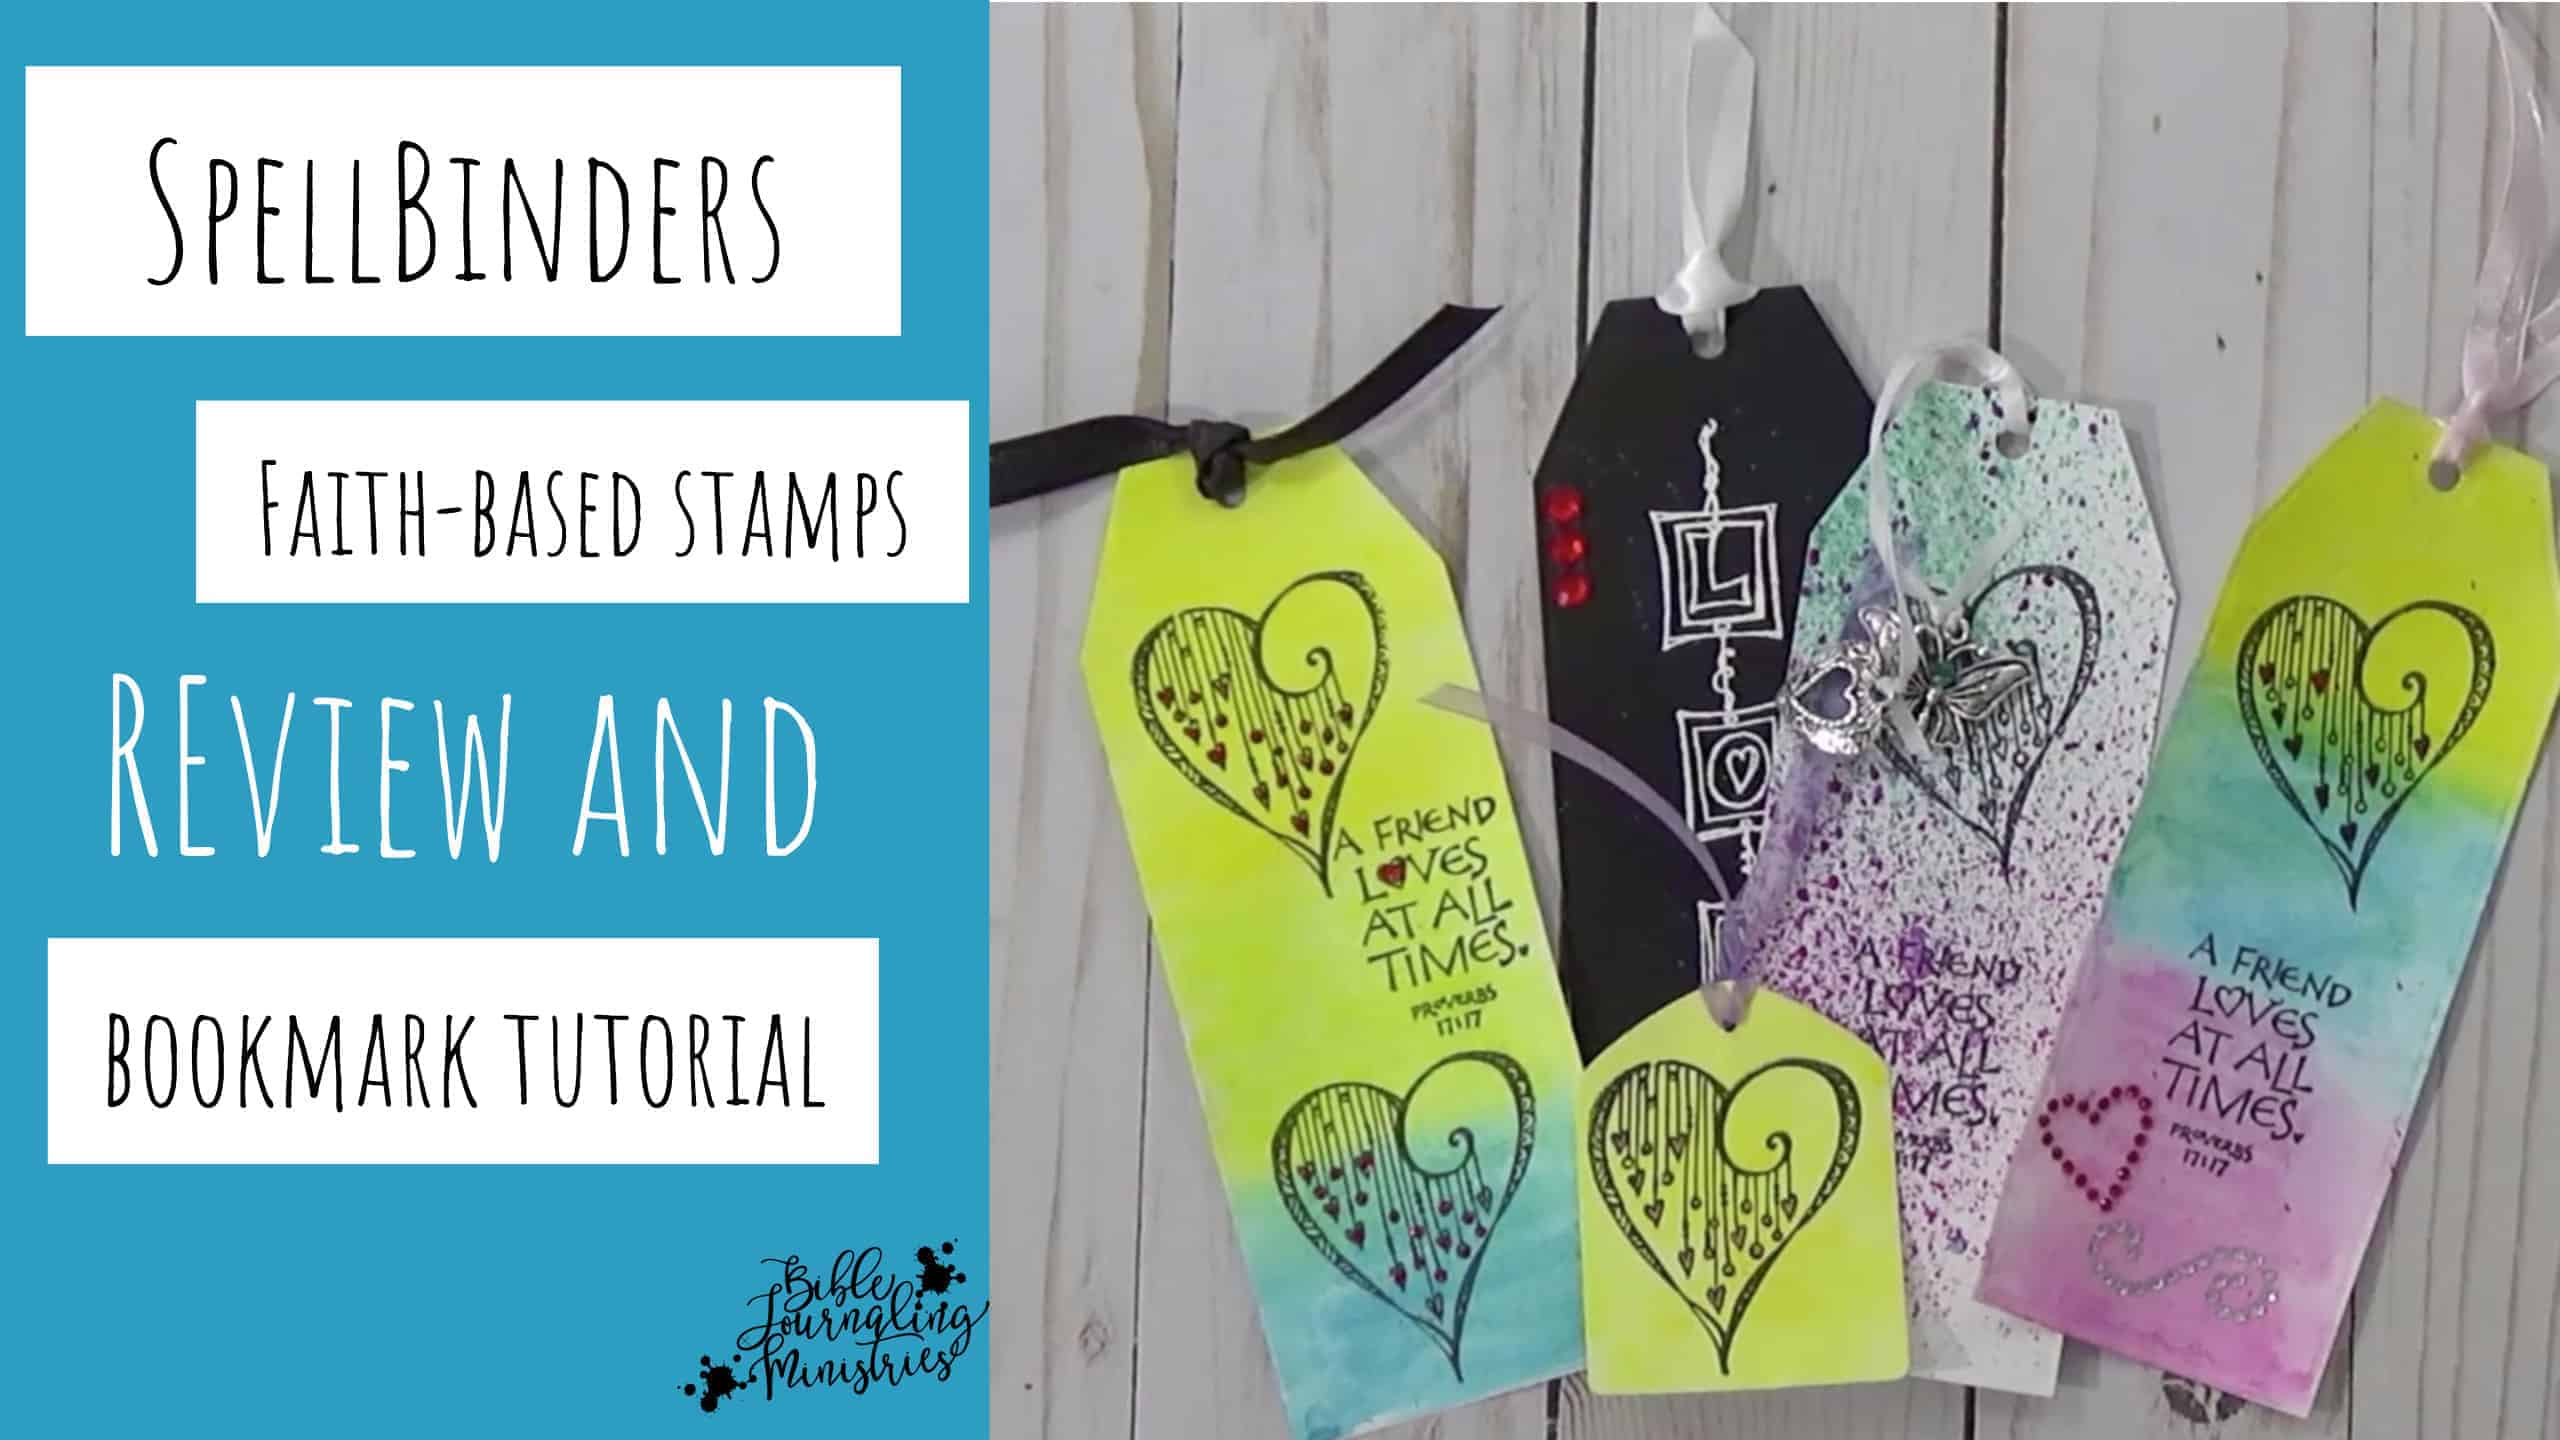 spellbinders faith-based stamps